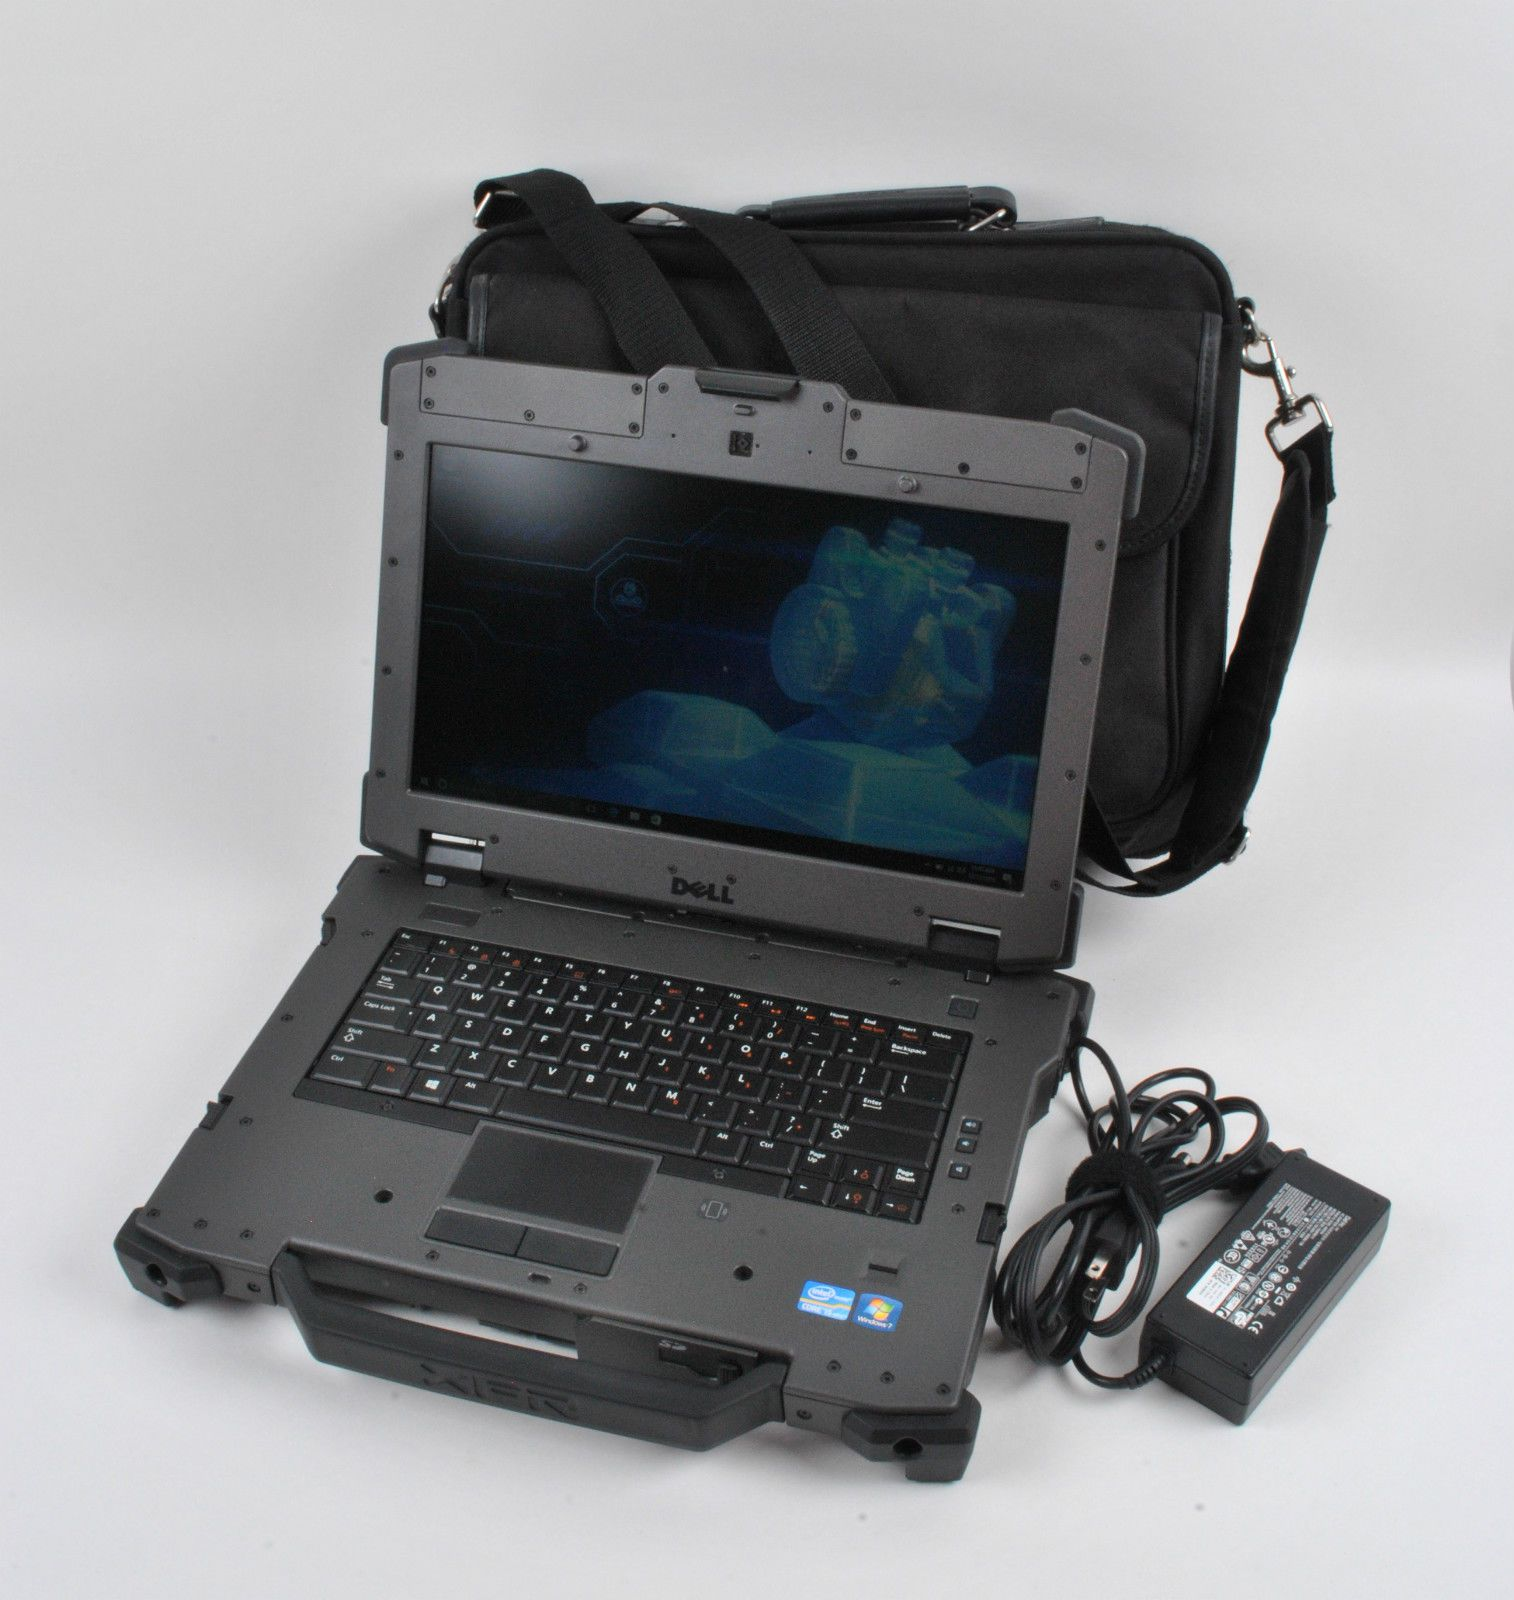 Pin By Efesales On Ebay Store Military Gadgets Rugged Laptop Spy Equipment